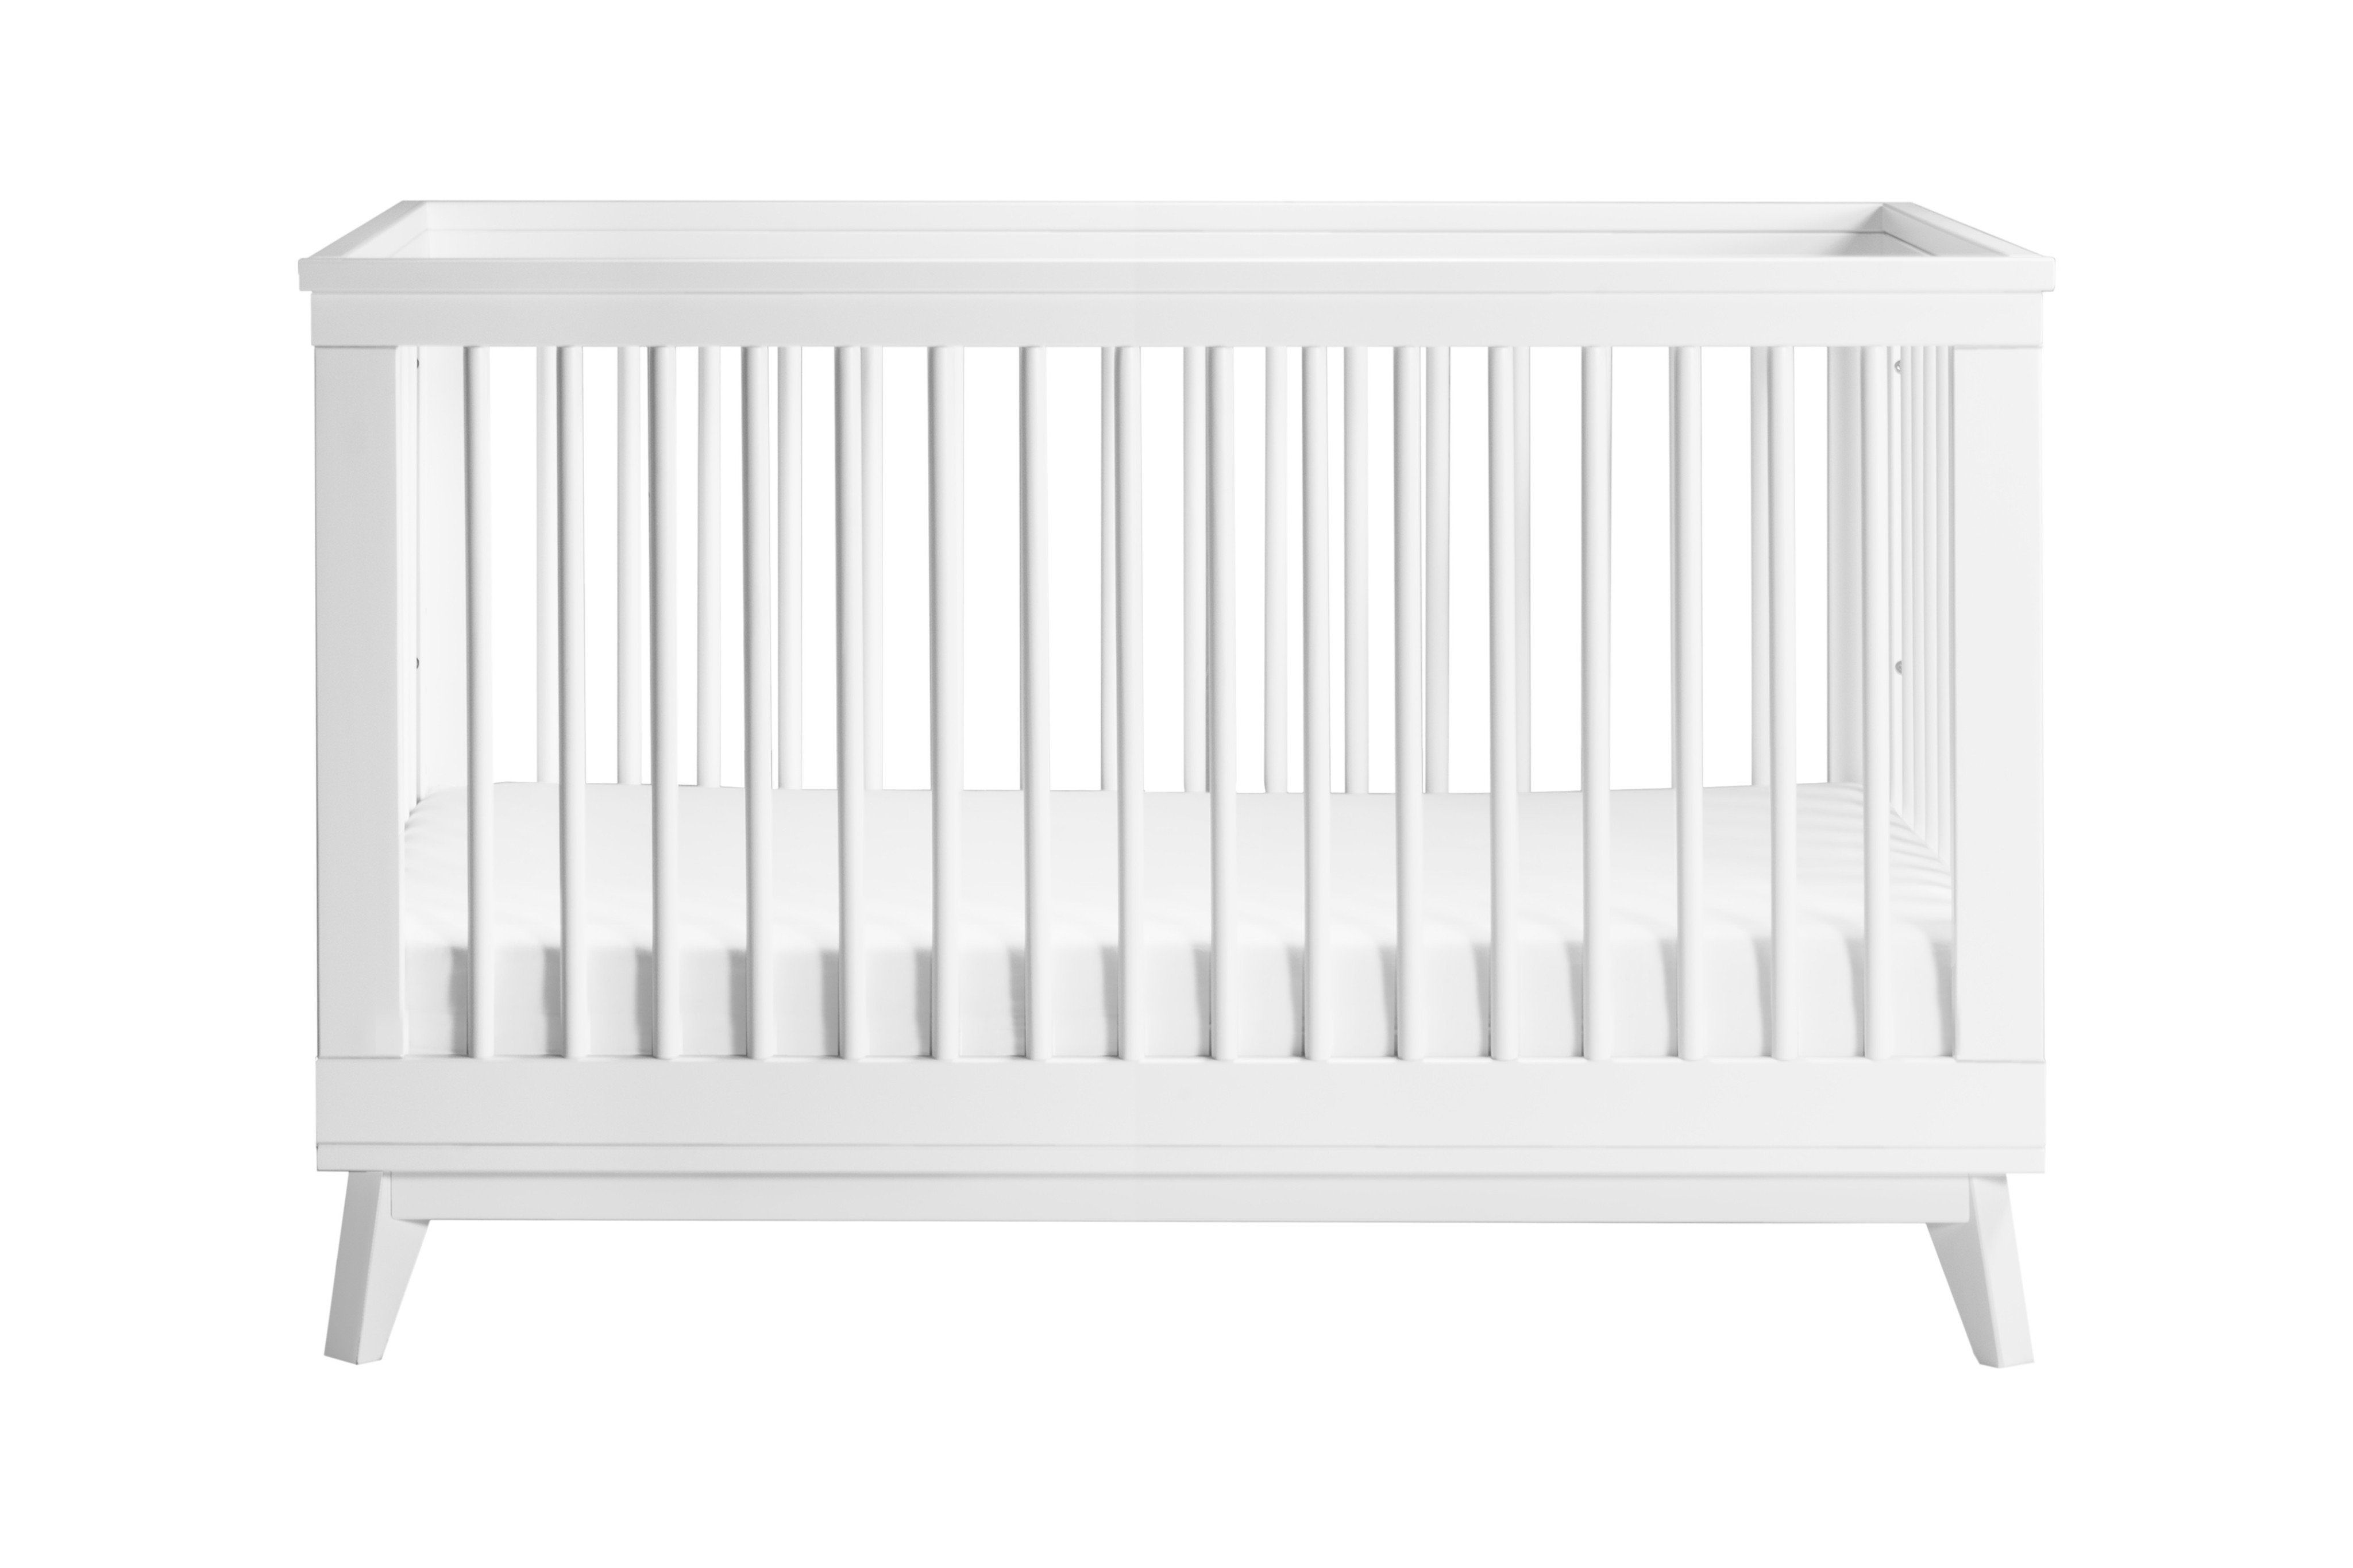 Scoot 3 In 1 Convertible Crib With Toddler Bed Conversion Kit Cribs Convertible Crib Crib Mattress